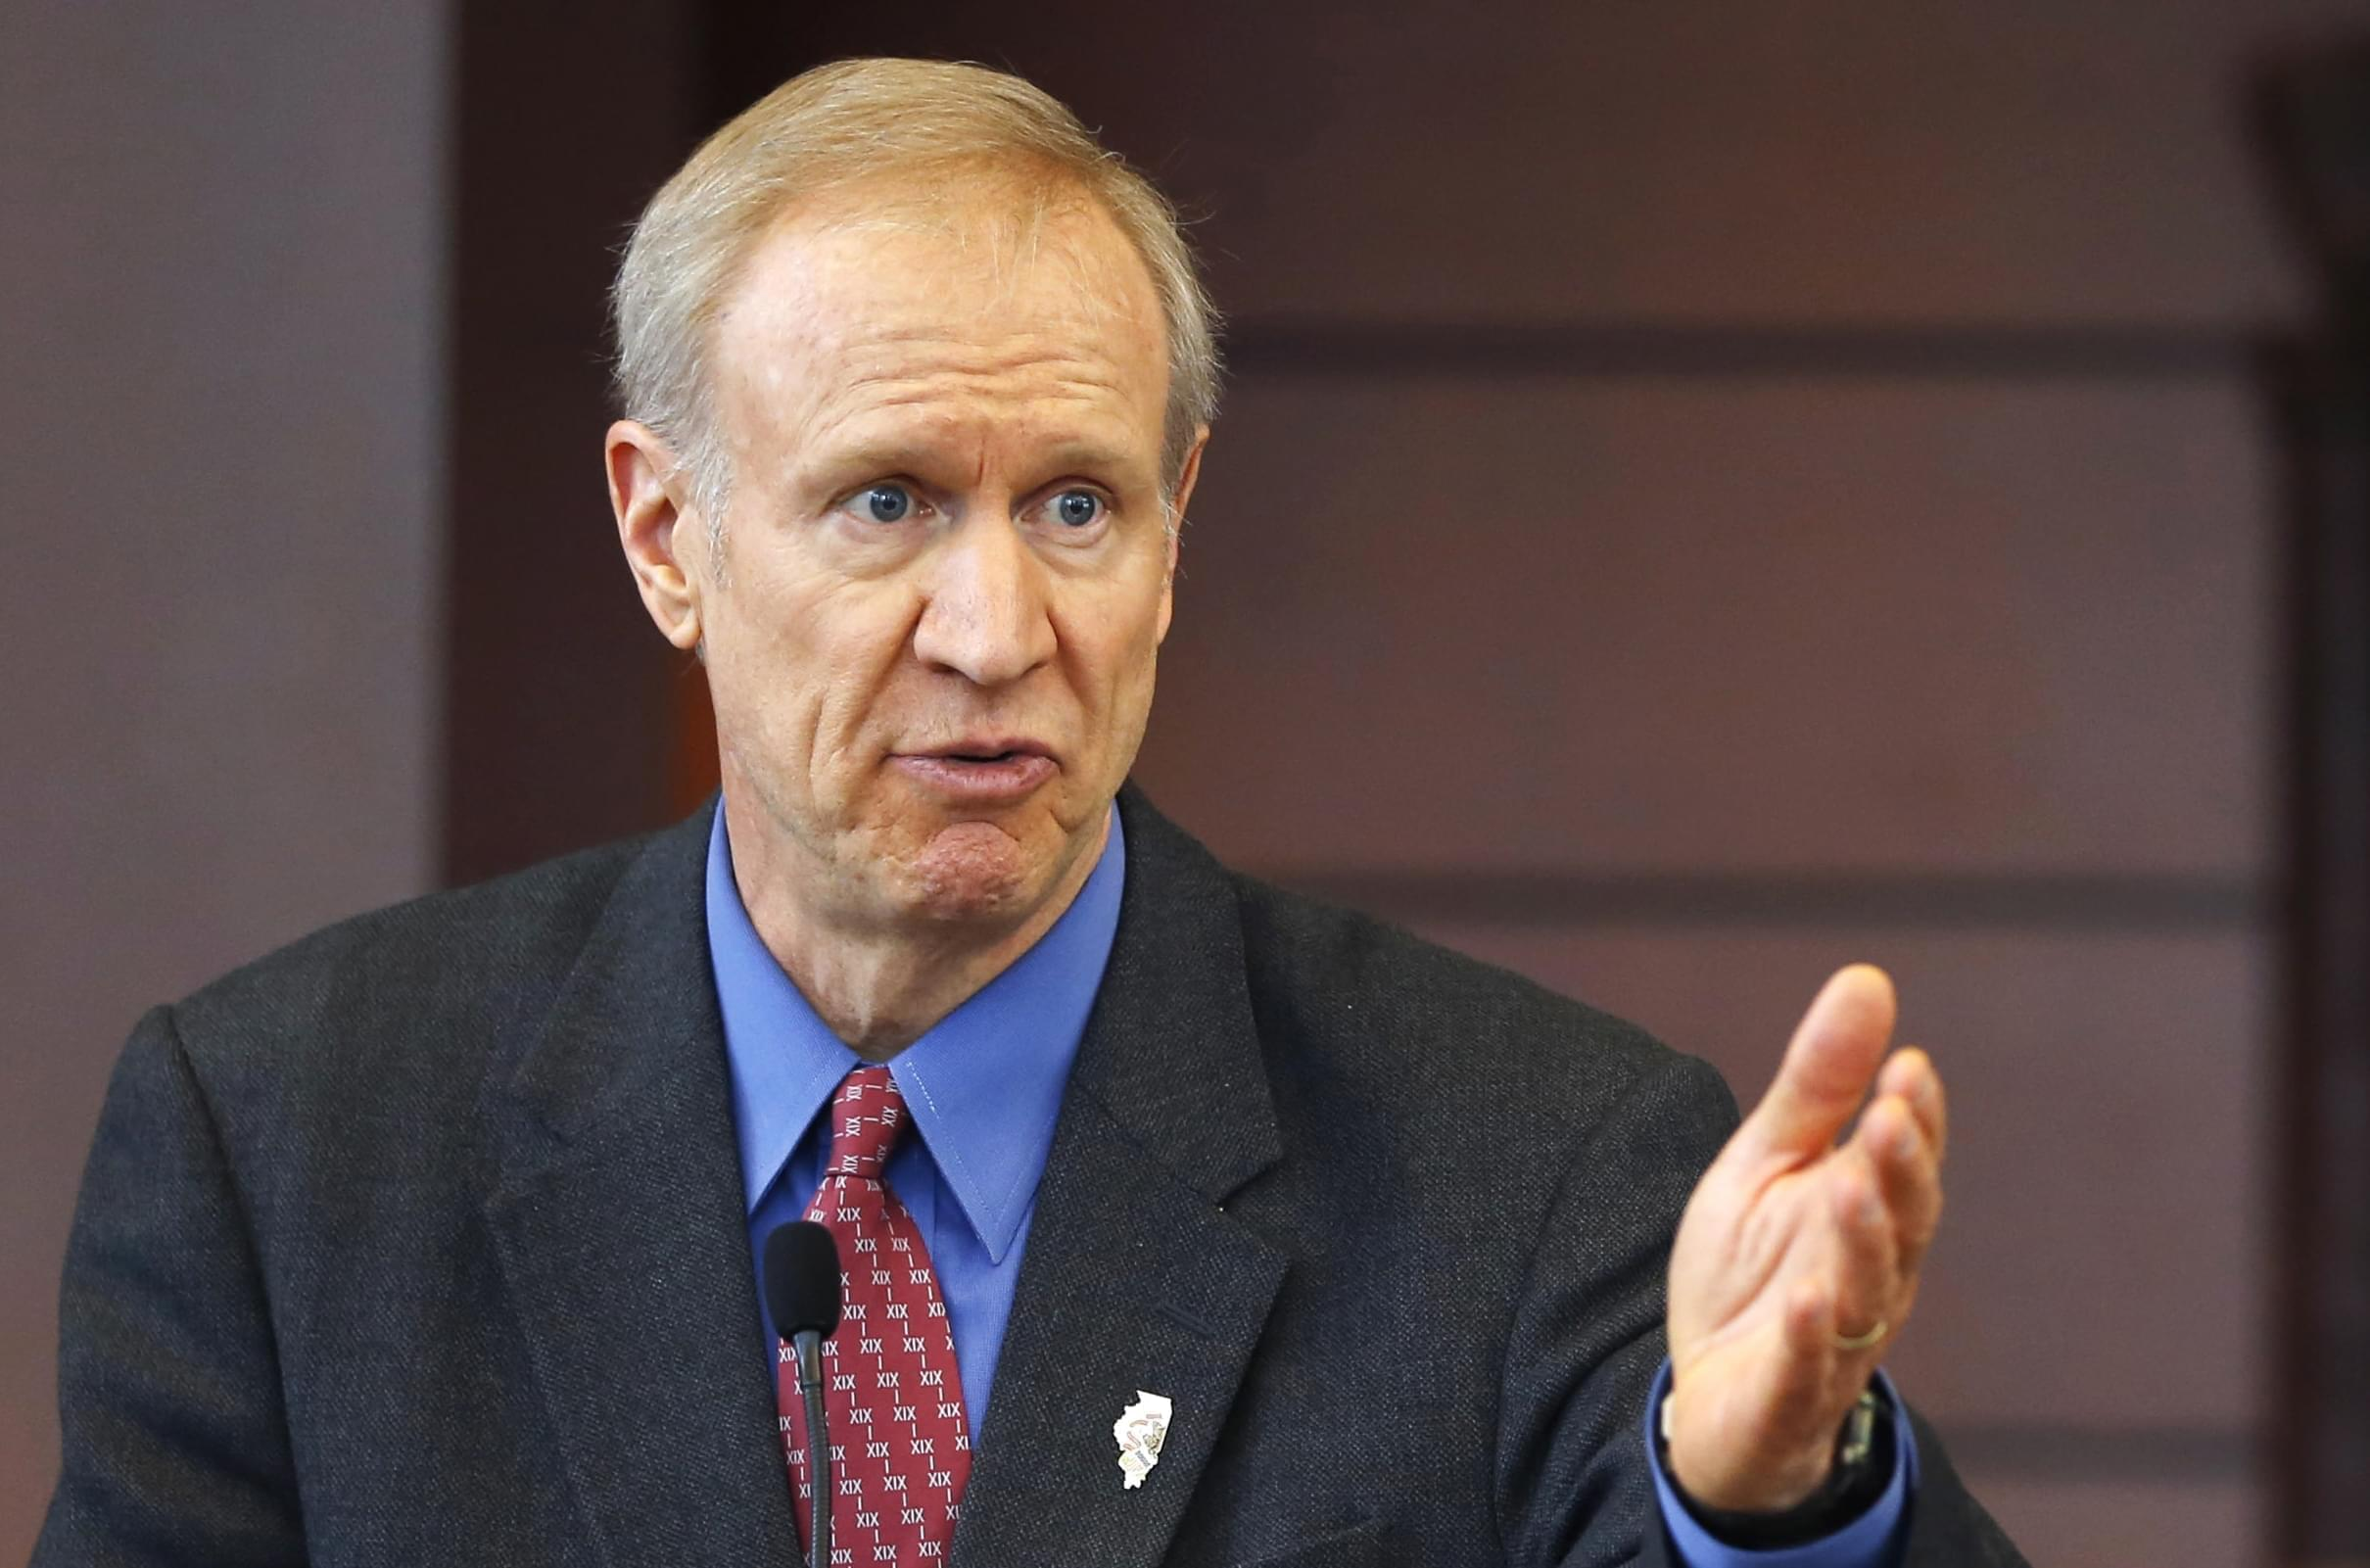 In this March 20, 2015 file photo, Illinois Gov. Bruce Rauner speaks at a news conference in Chicago.